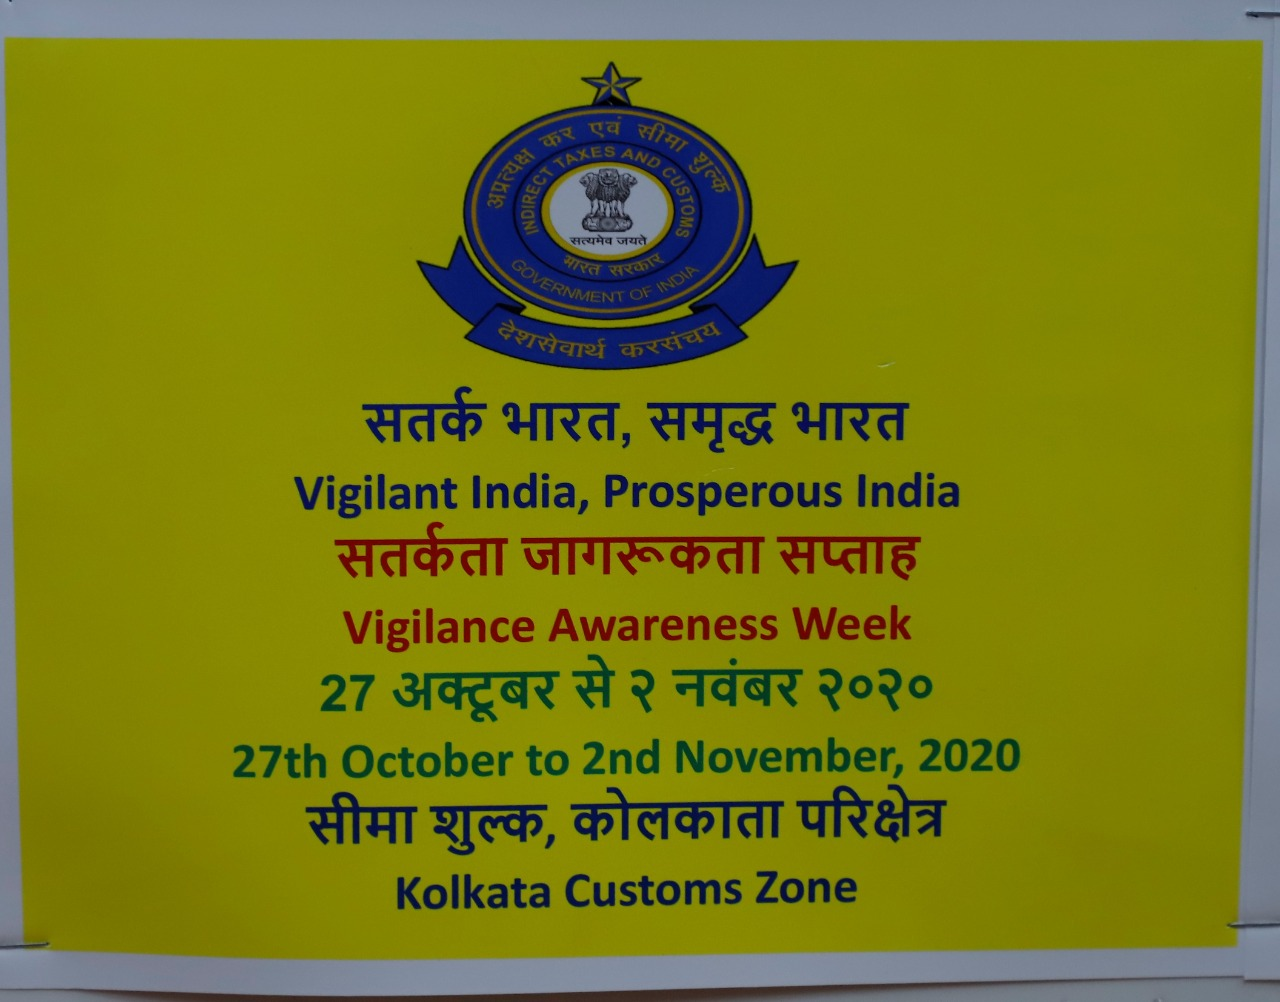 Vigilance awareness week from 27th Oct., 2020 to 2nd Nov., 2020